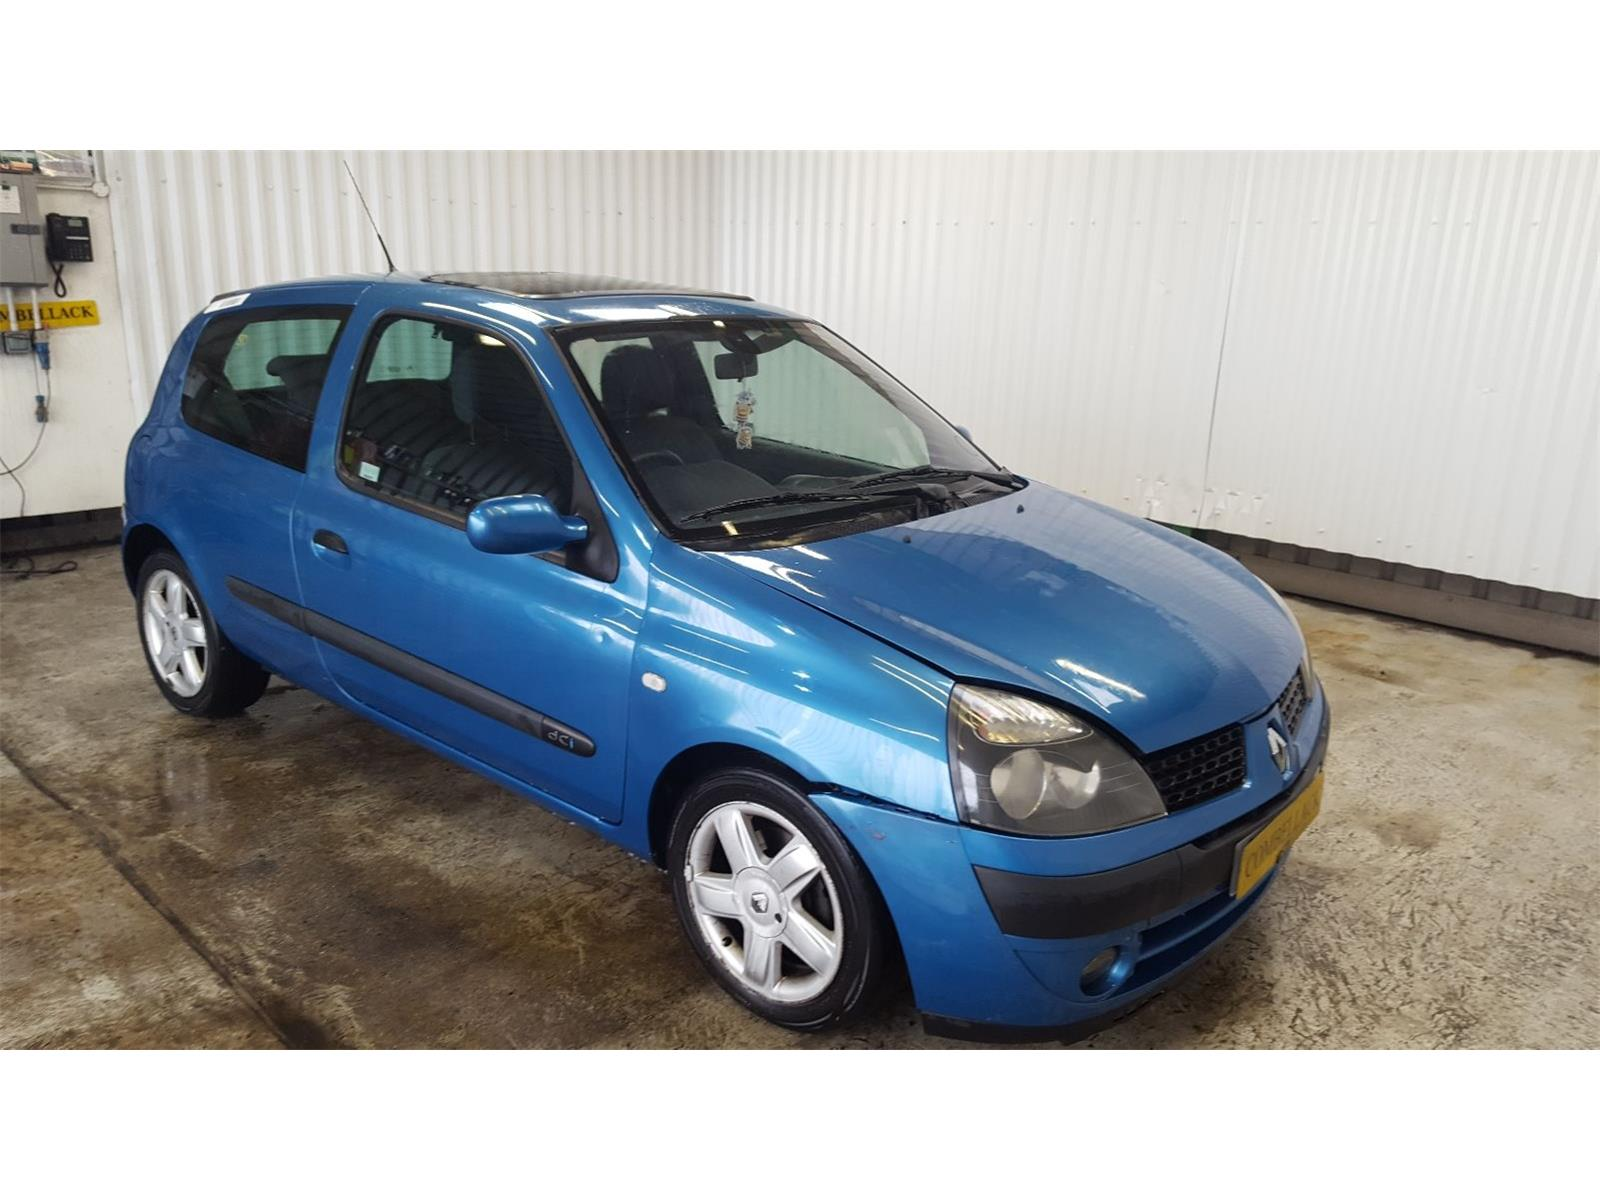 Renault Clio 2001 To 2007 Dynamique 3 Door Hatchback